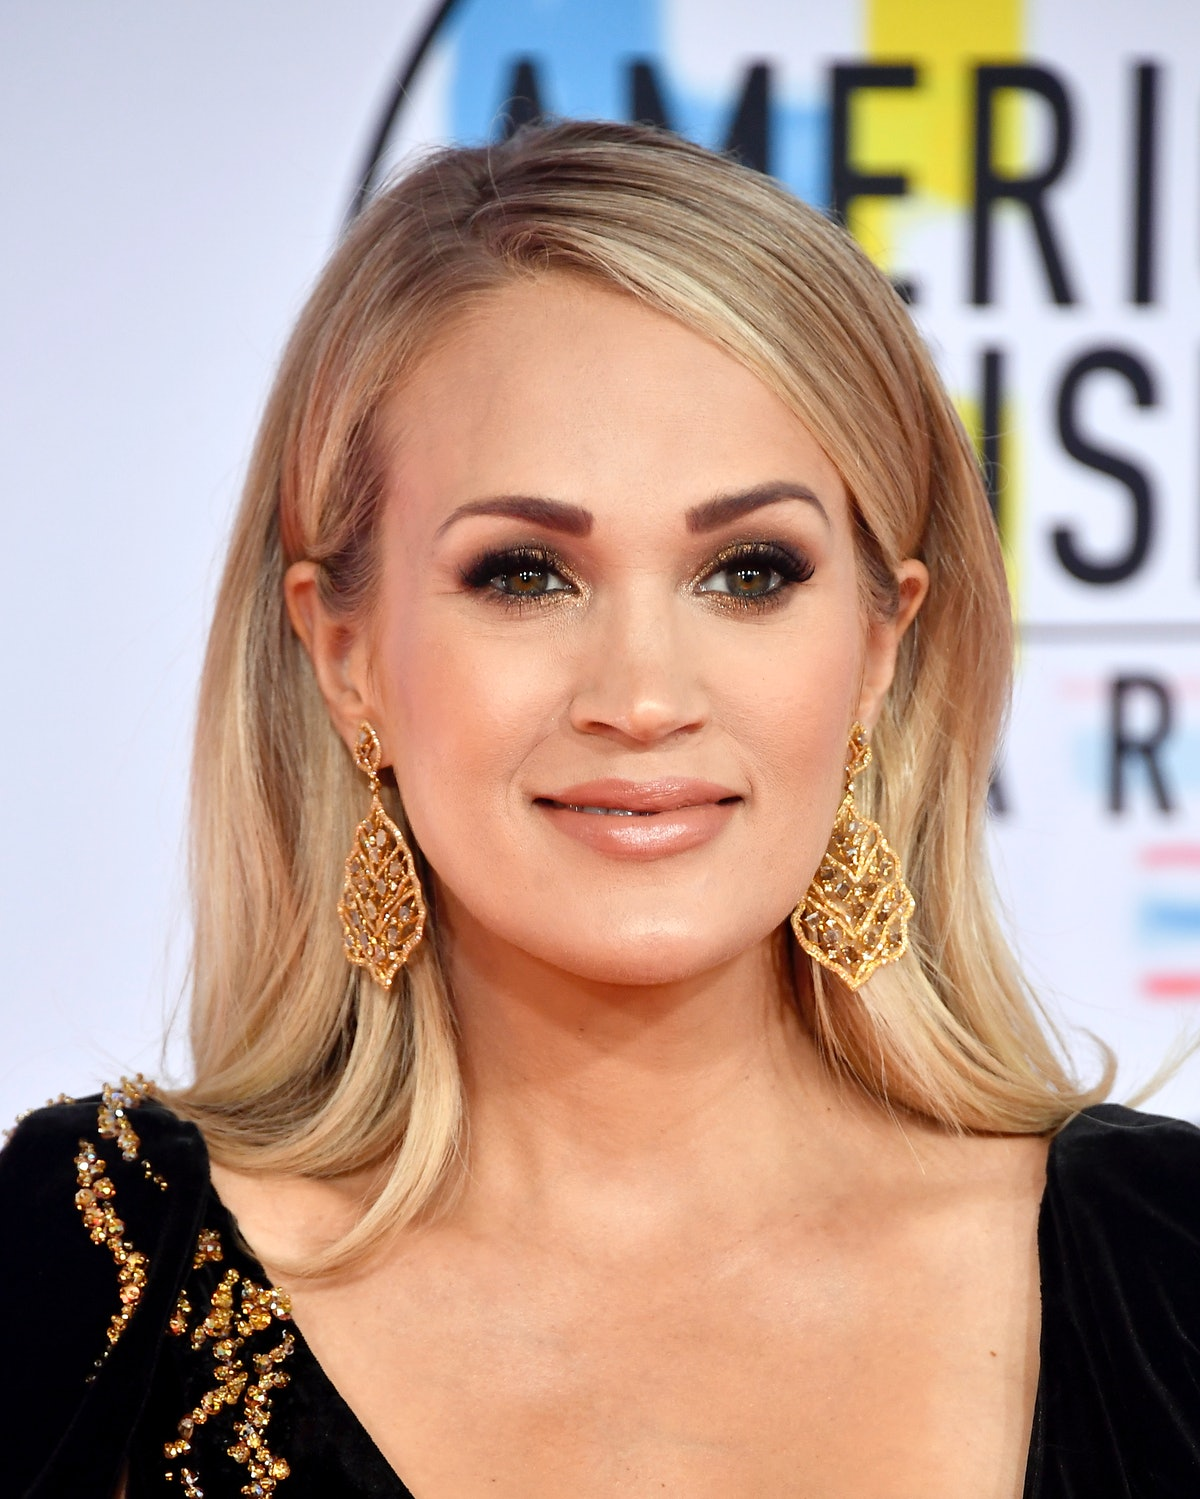 Carrie Underwood Opens Up About Taking Her Kids To Work, & Her Perspective Is Interesting